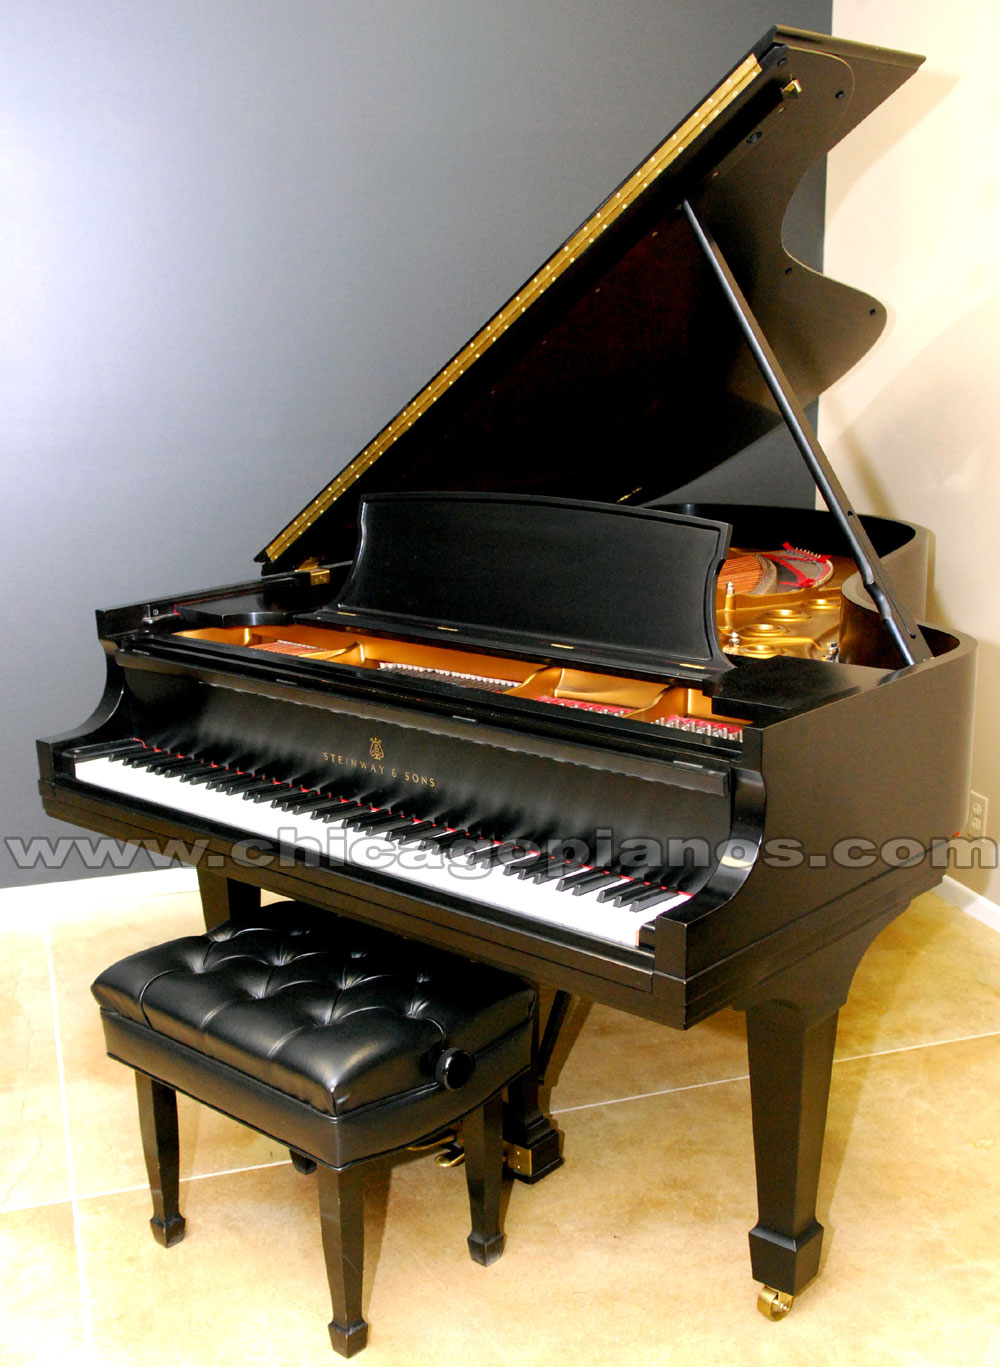 used steinway pianos and reconditioned antique steinway pianos from chicago pianos com. Black Bedroom Furniture Sets. Home Design Ideas